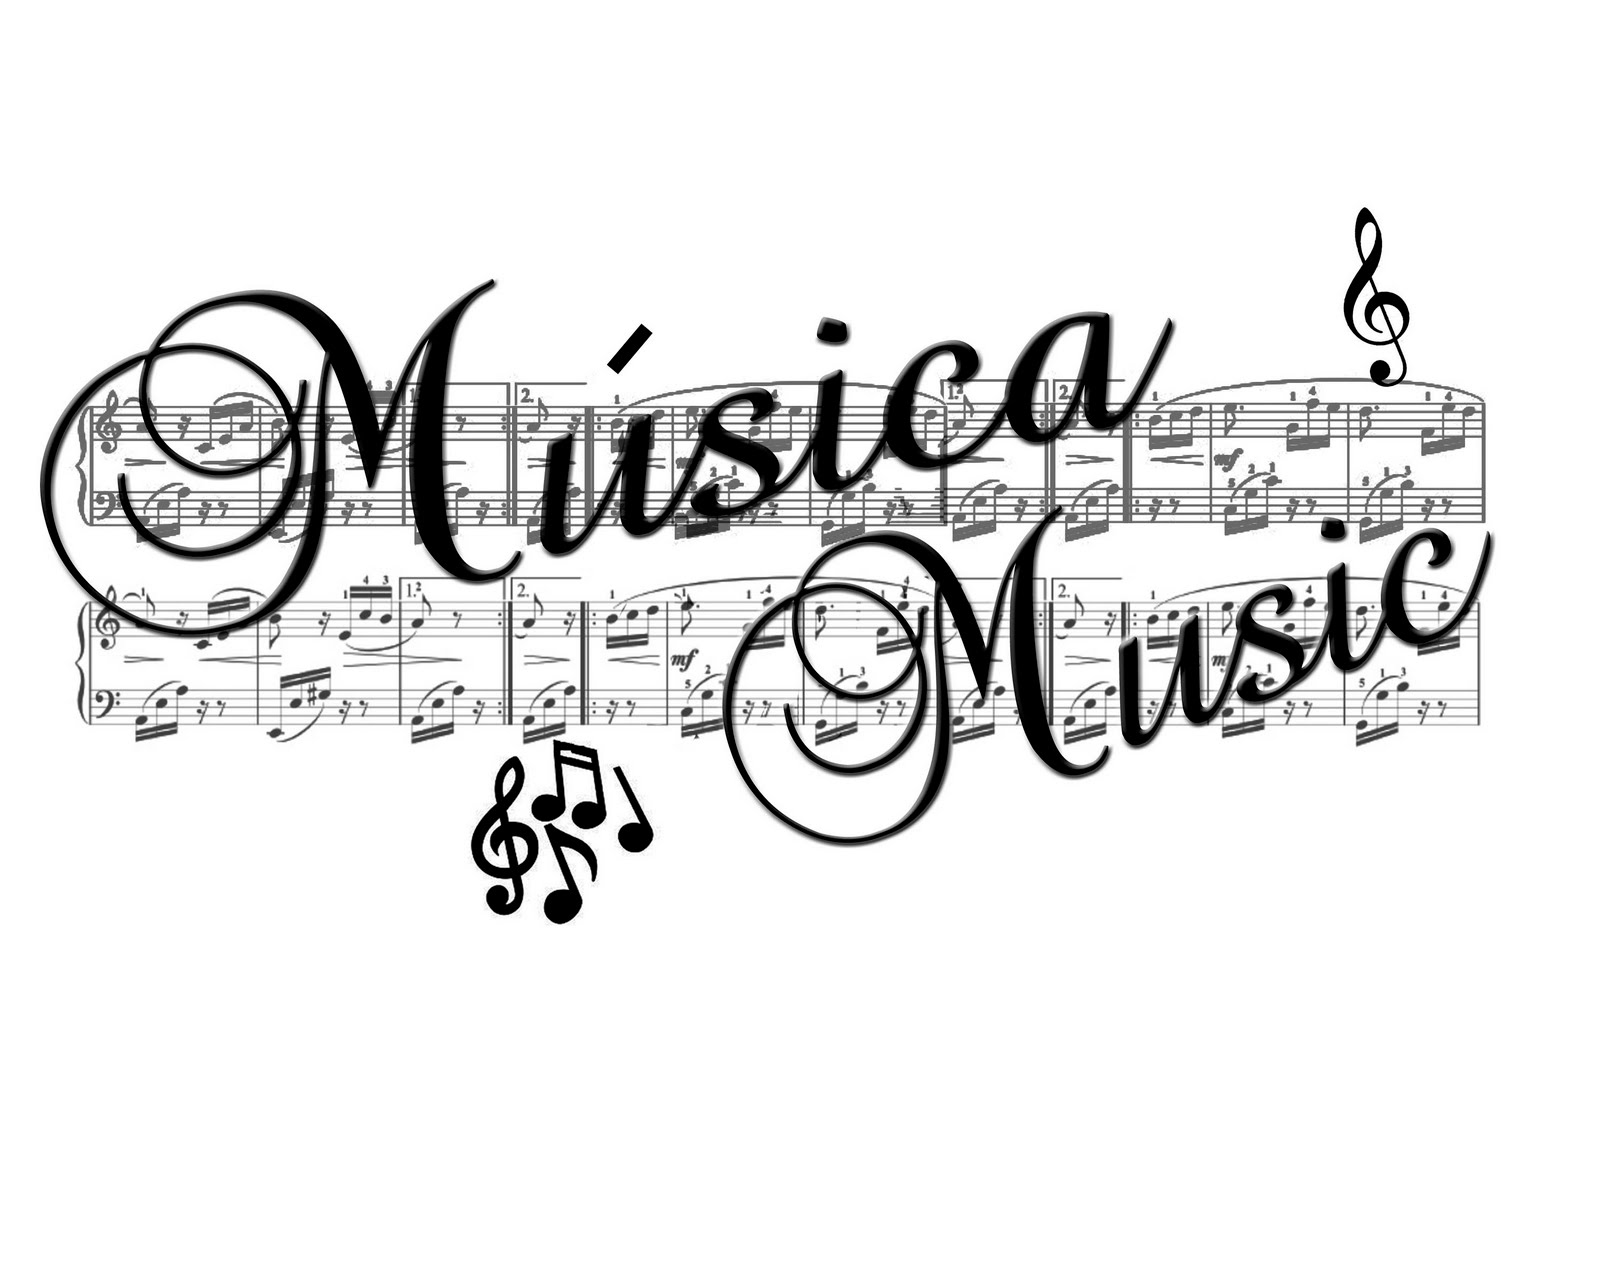 holamormon1: ****** MUSICA - AYUDAS VISUALES /// MUSIC - VISUAL AIDS ...